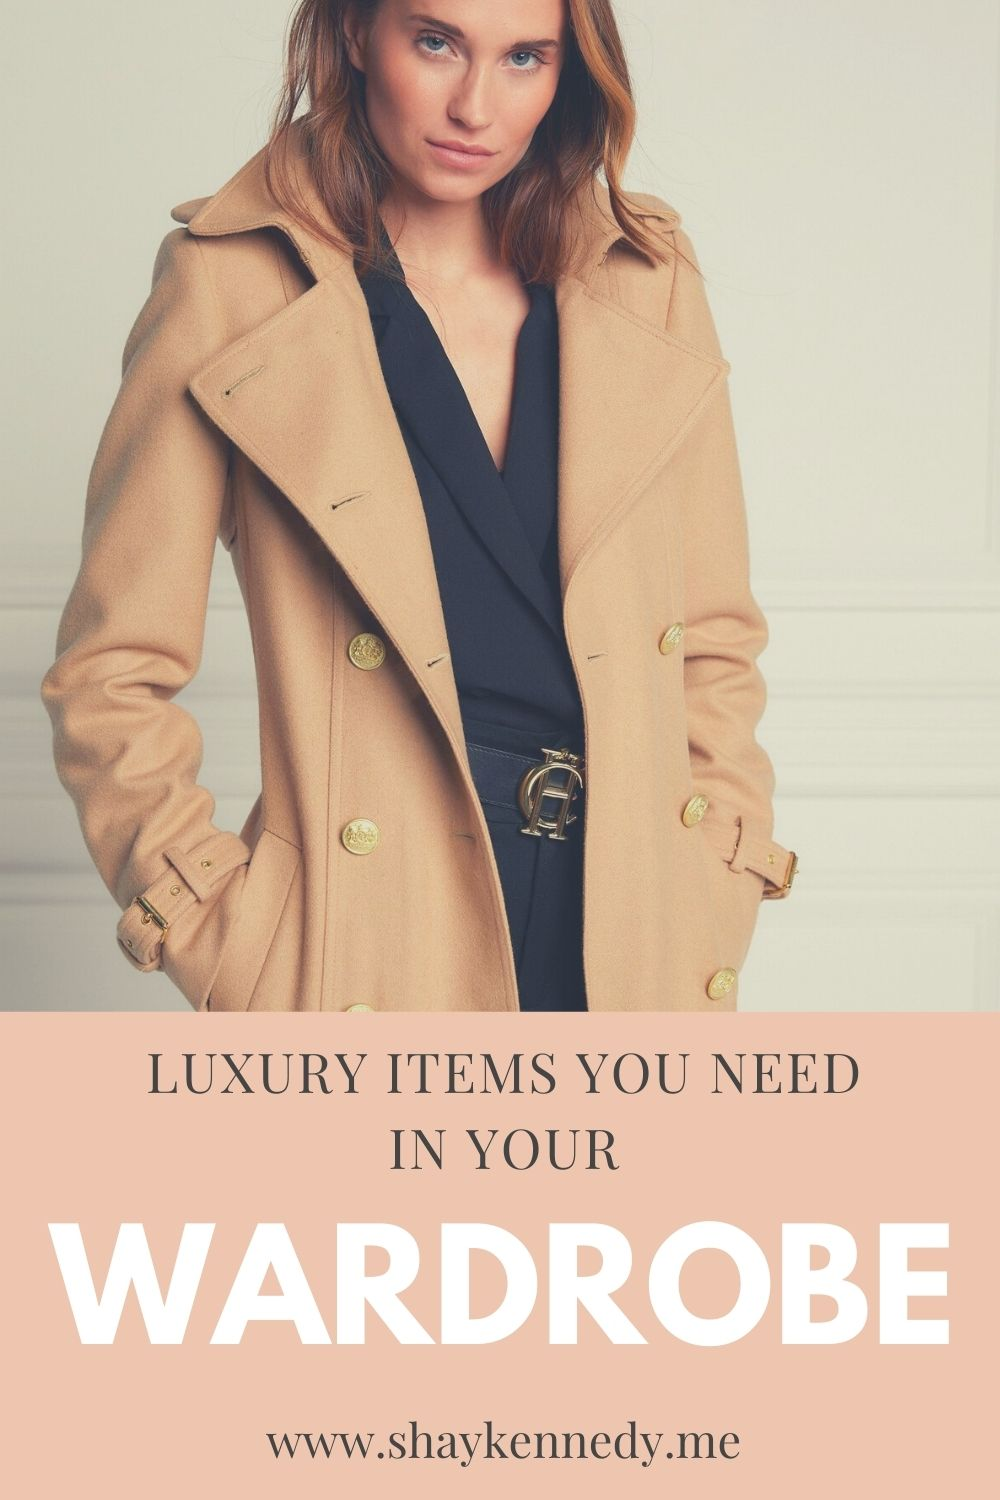 Pinterest Pin of luxury items you need in your wardrobe